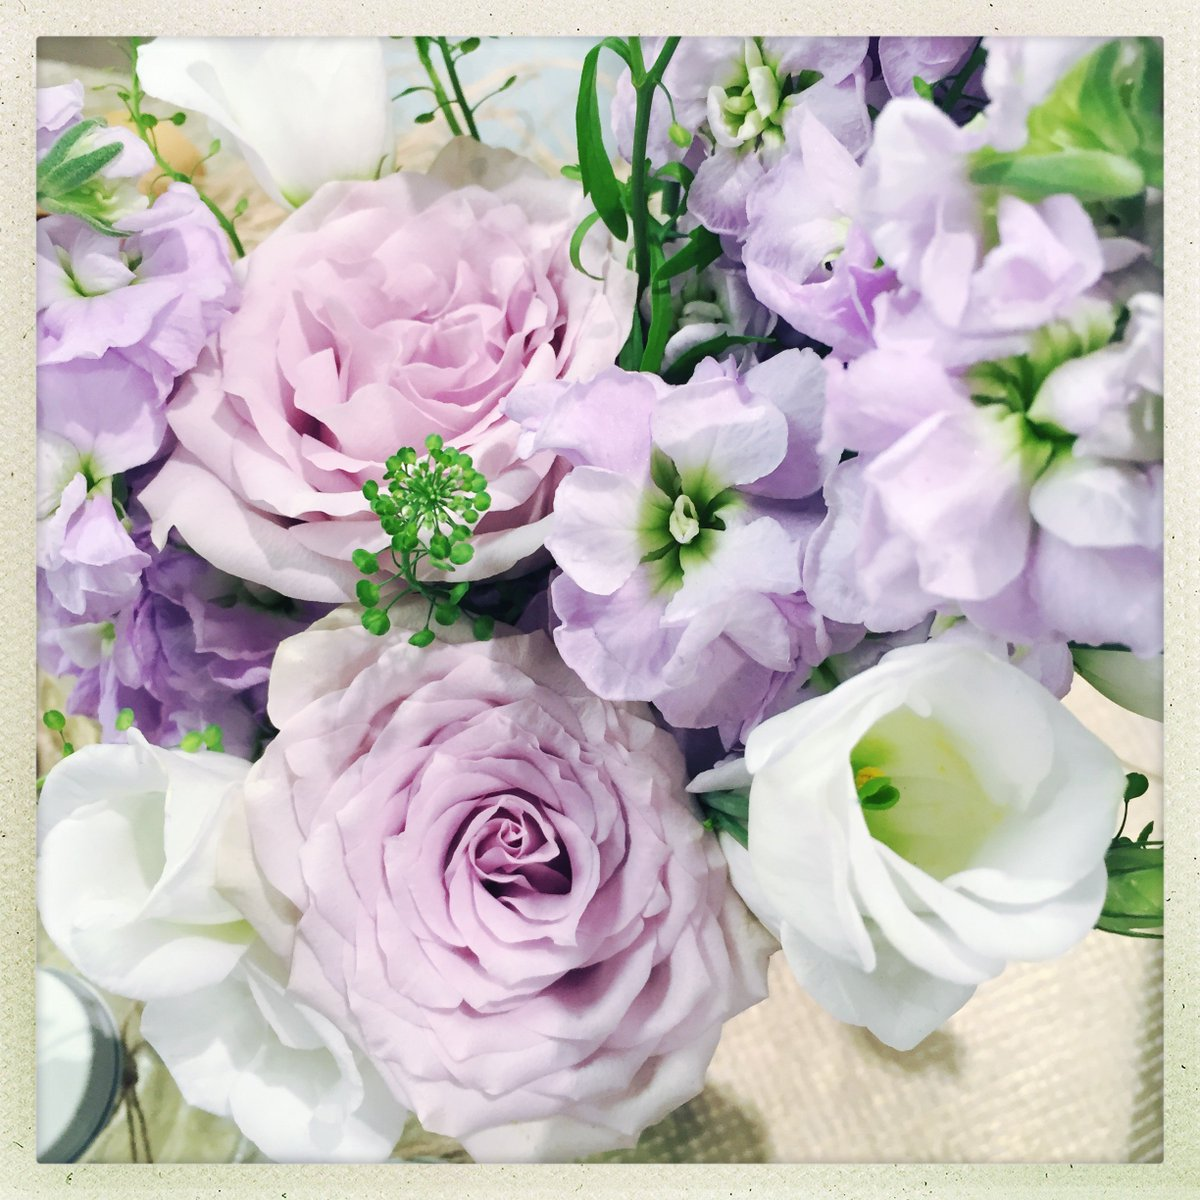 Who wants to win a beautiful bunch @BloomandWild flowers for Mother's Day? Follow us and RT to win! https://t.co/roFqNaSnMO